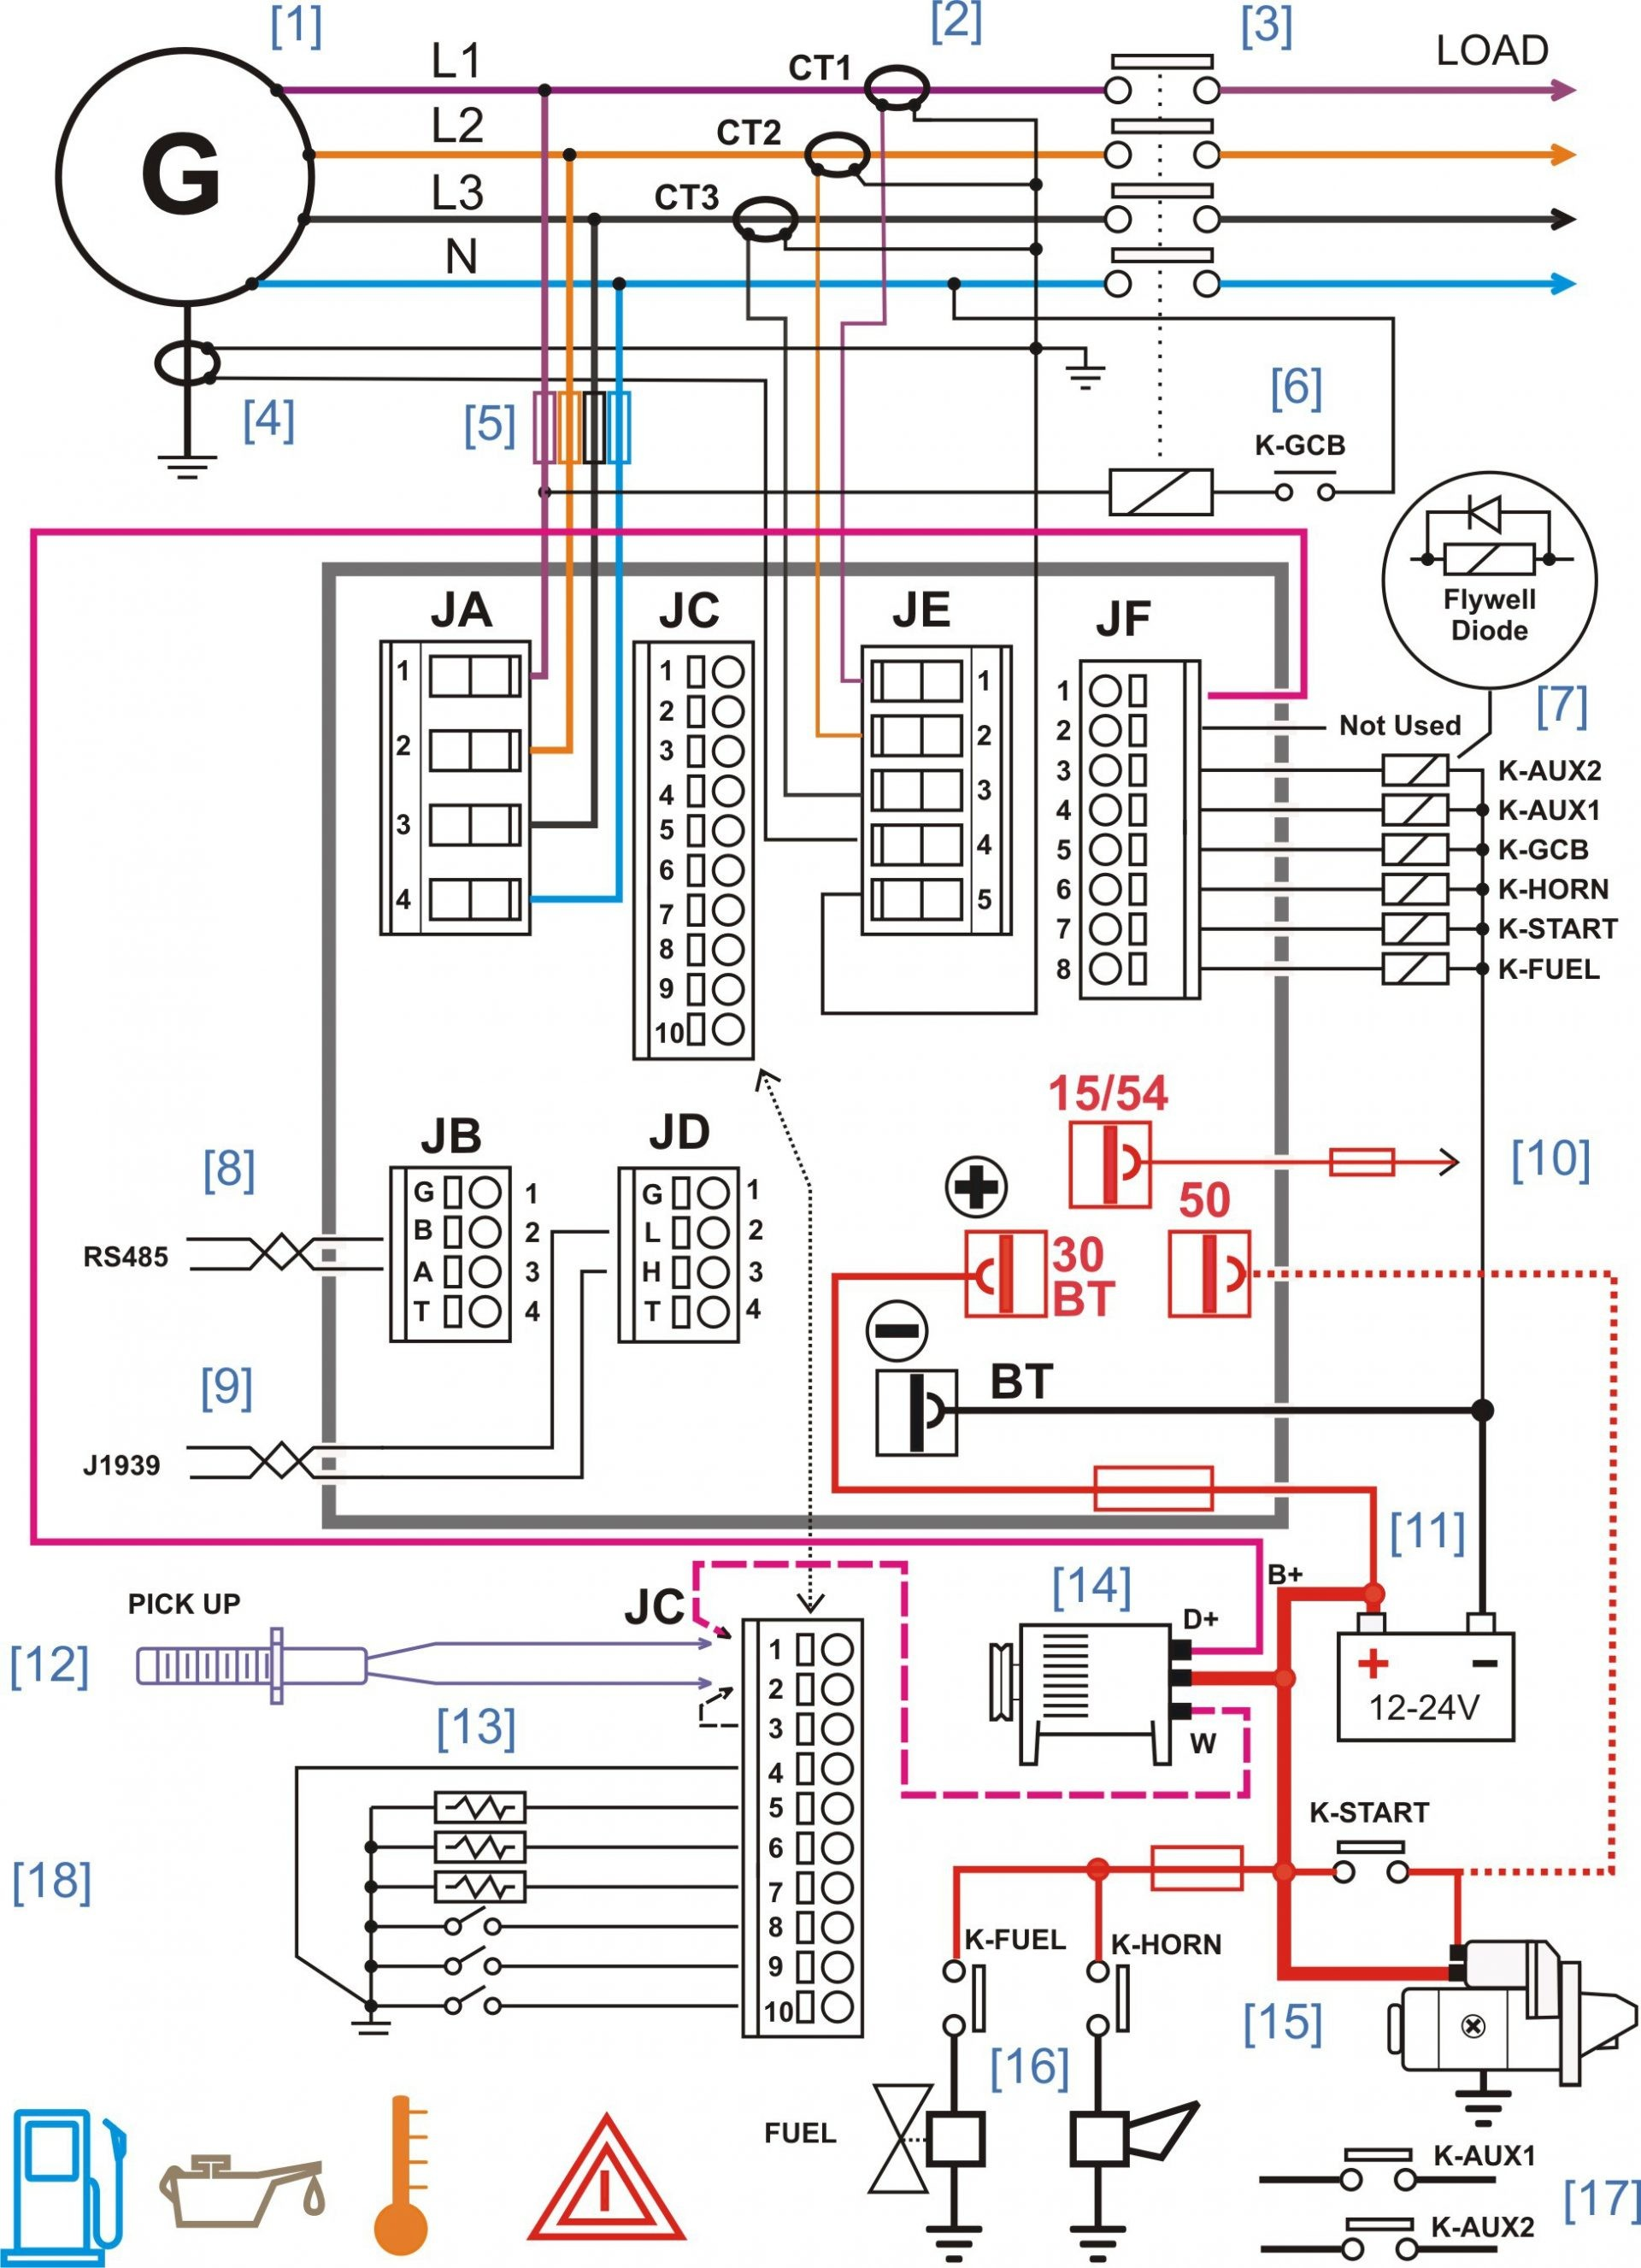 hight resolution of car radio wiring diagram kenwood stereo kdc 210u within in delphi delco part number and diagram